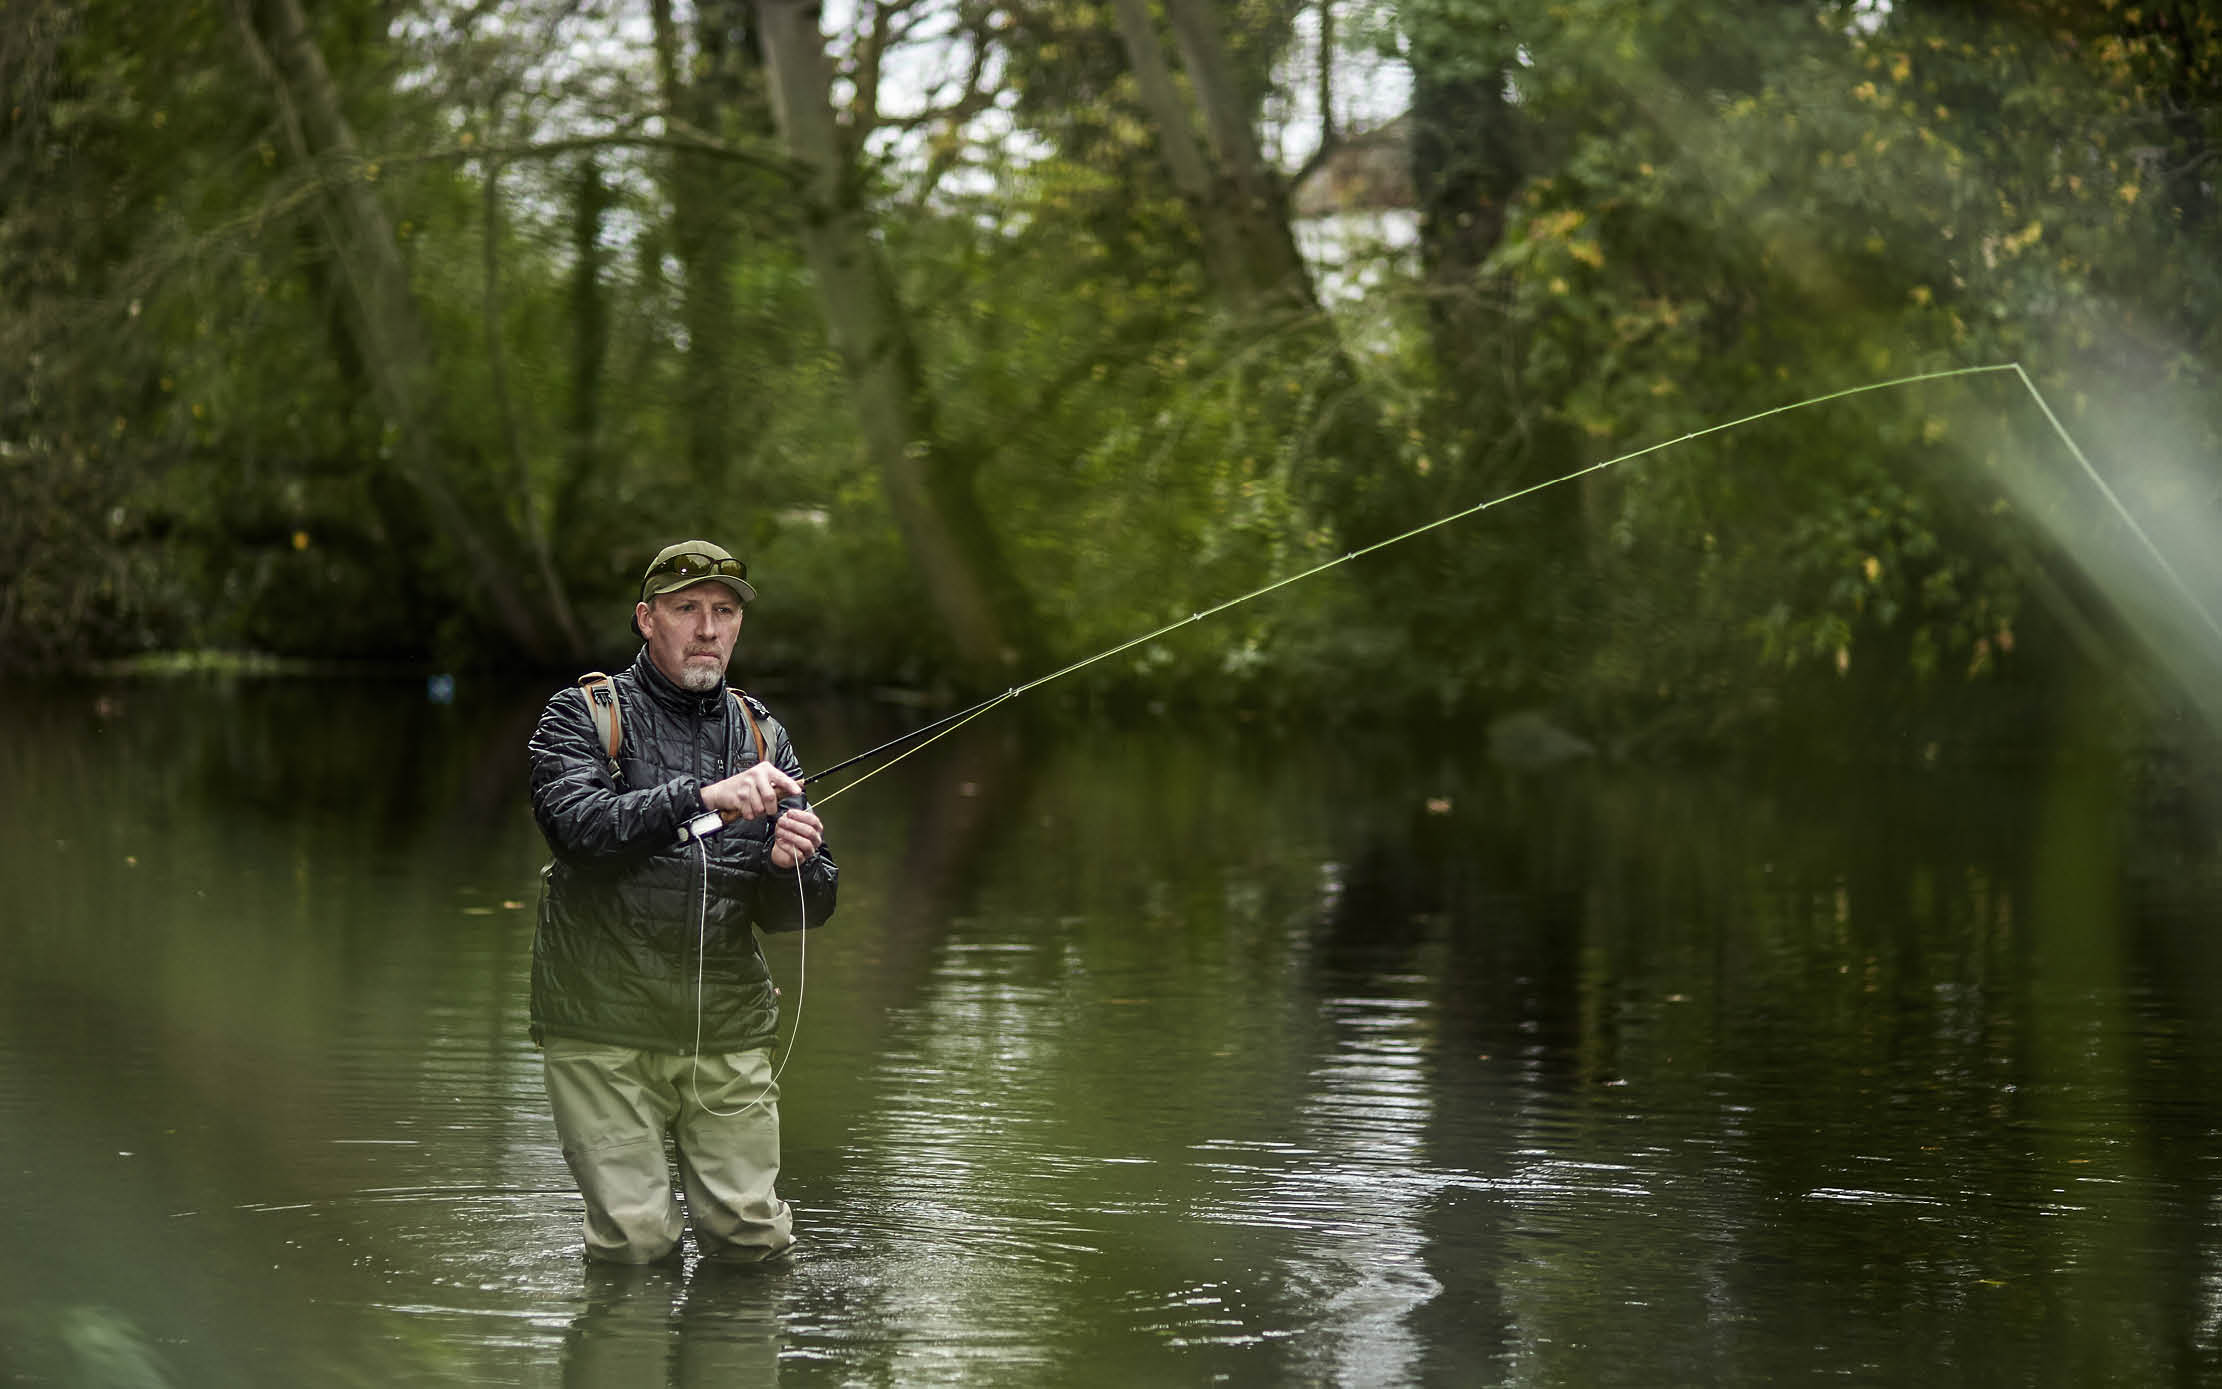 Fishing Break at Mitton Hall